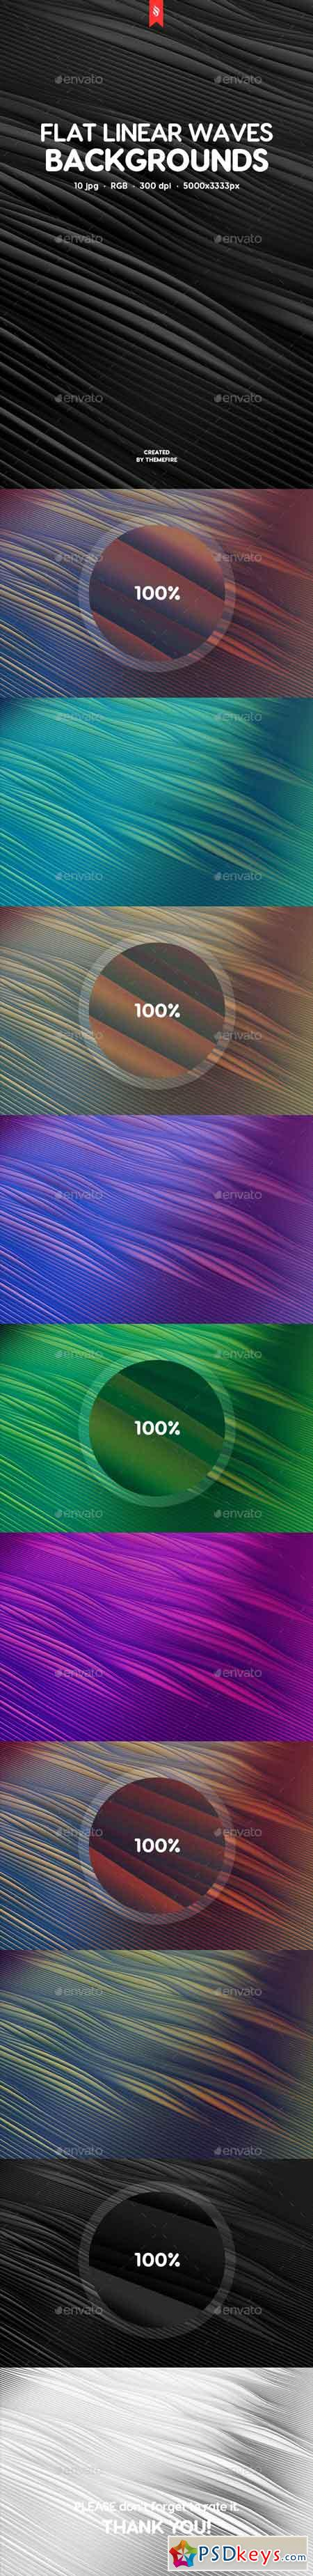 Flat Linear Waves Backgrounds 19727170